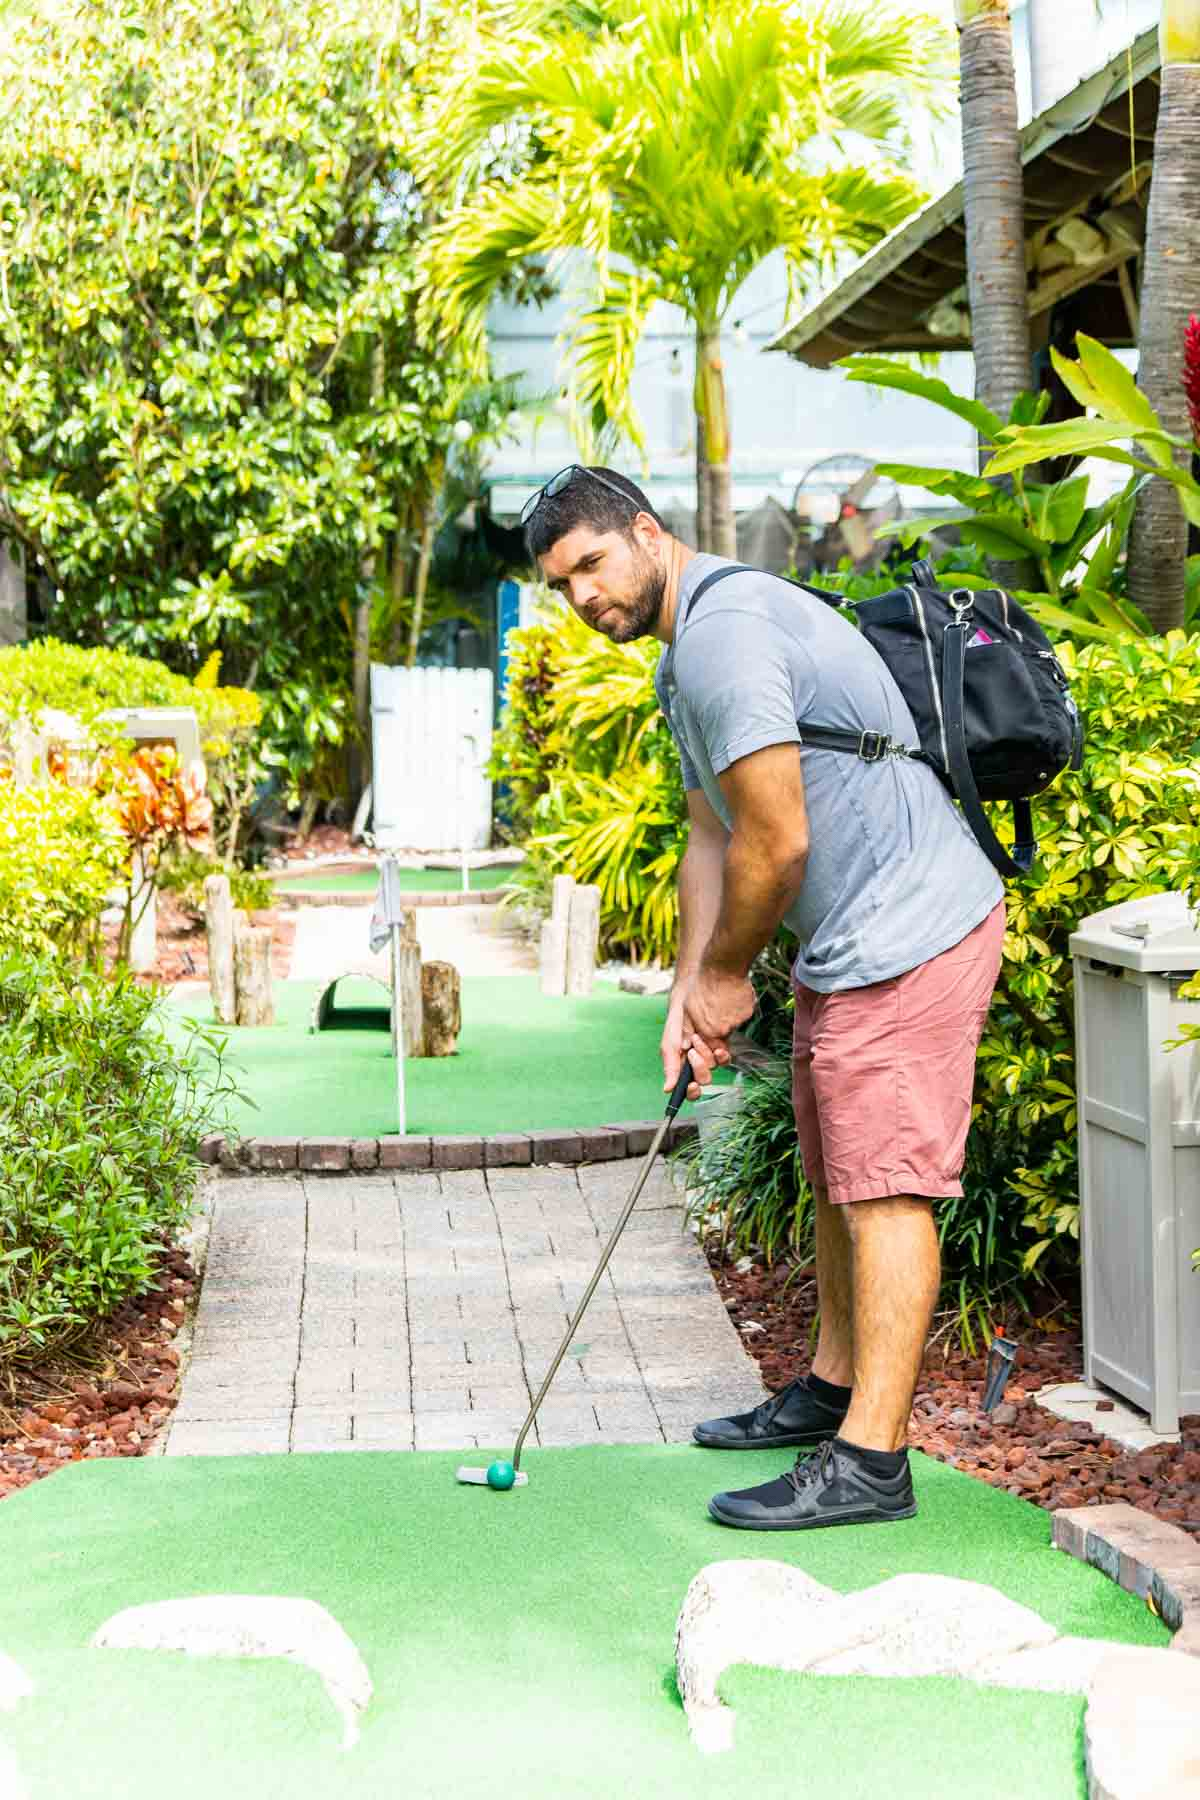 Man playing miniature golf